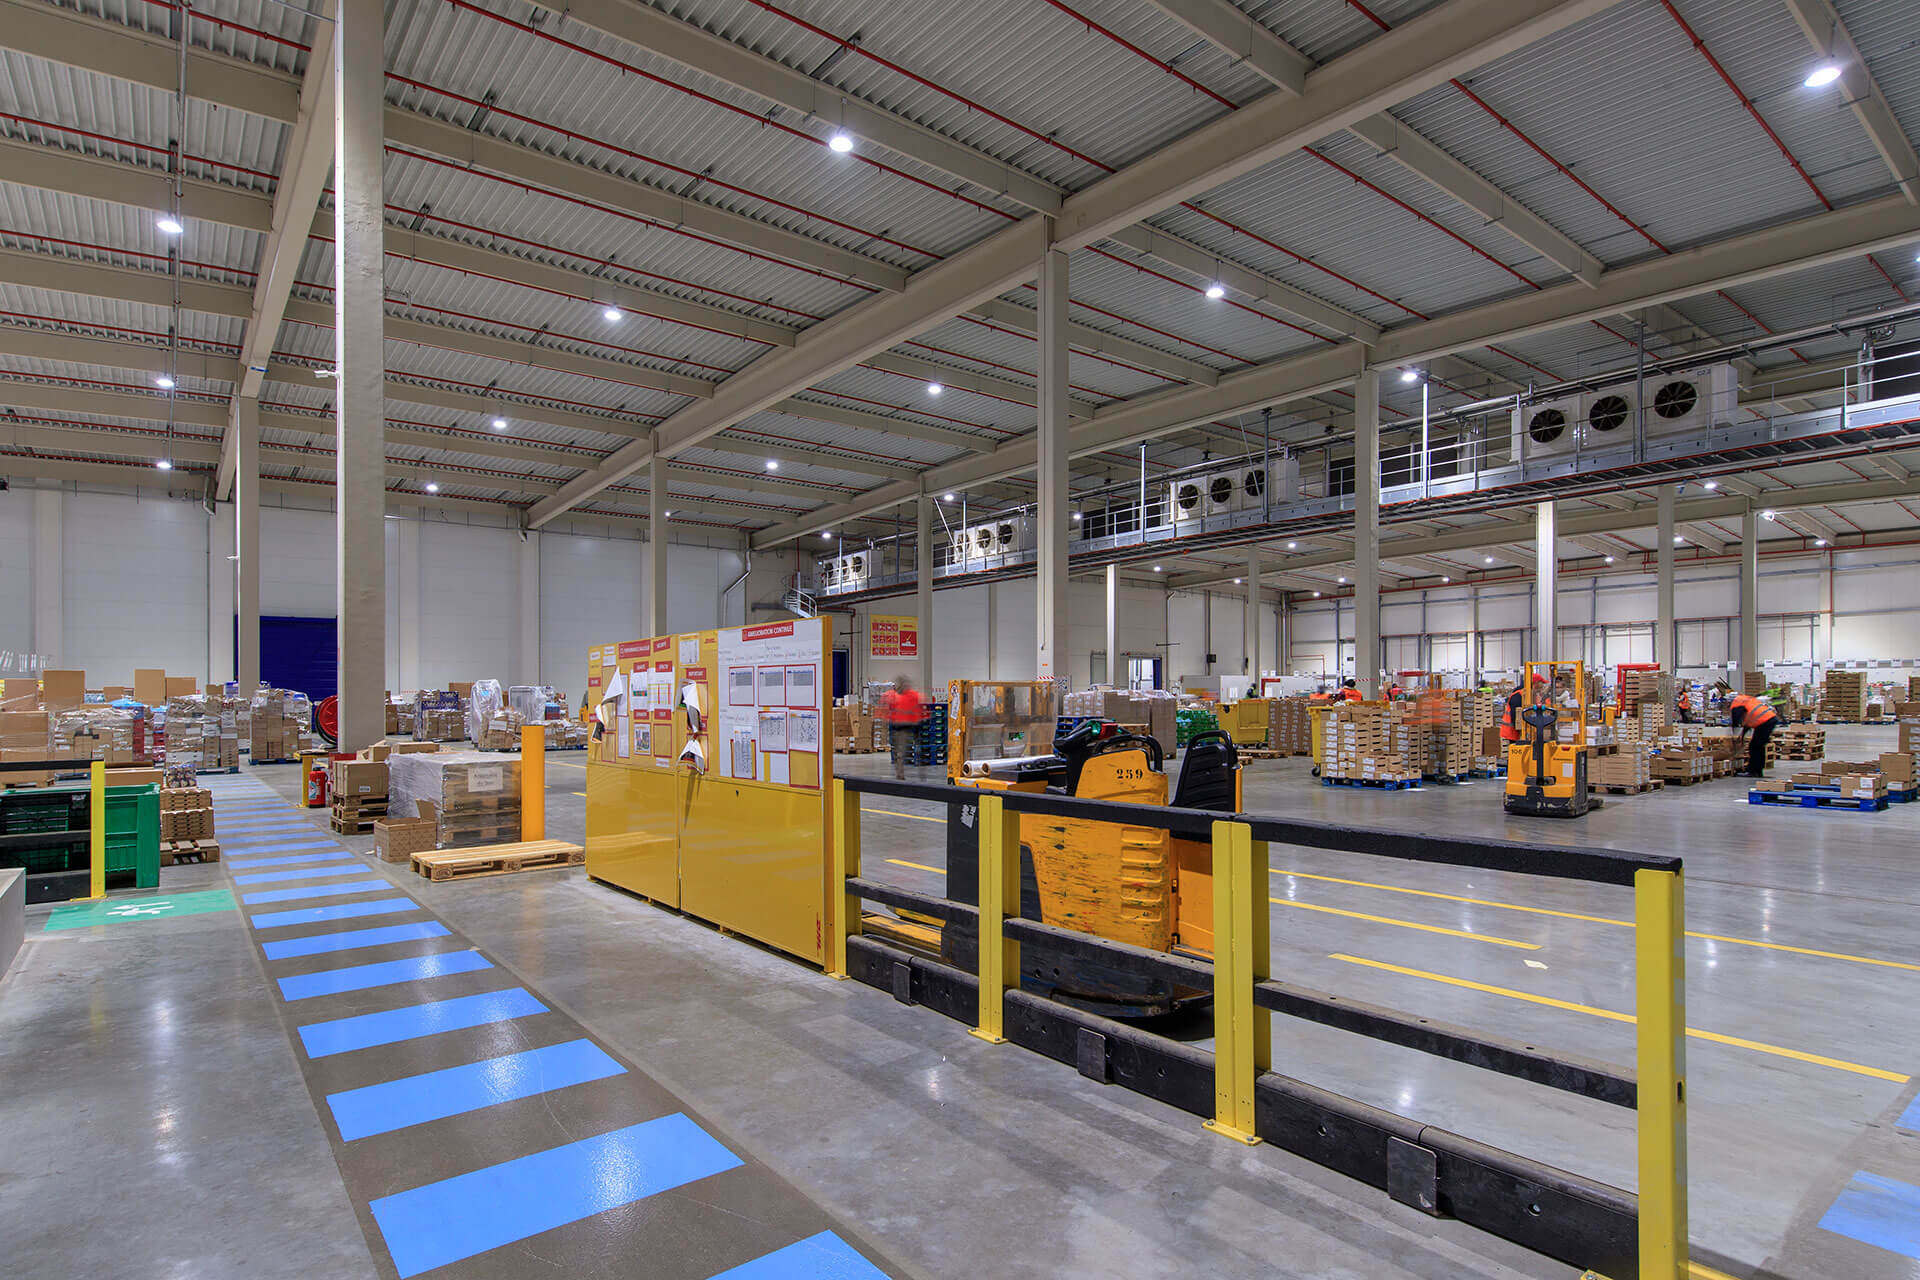 INDU BAY lighting solution creates a pleasant working environment with low operating costs